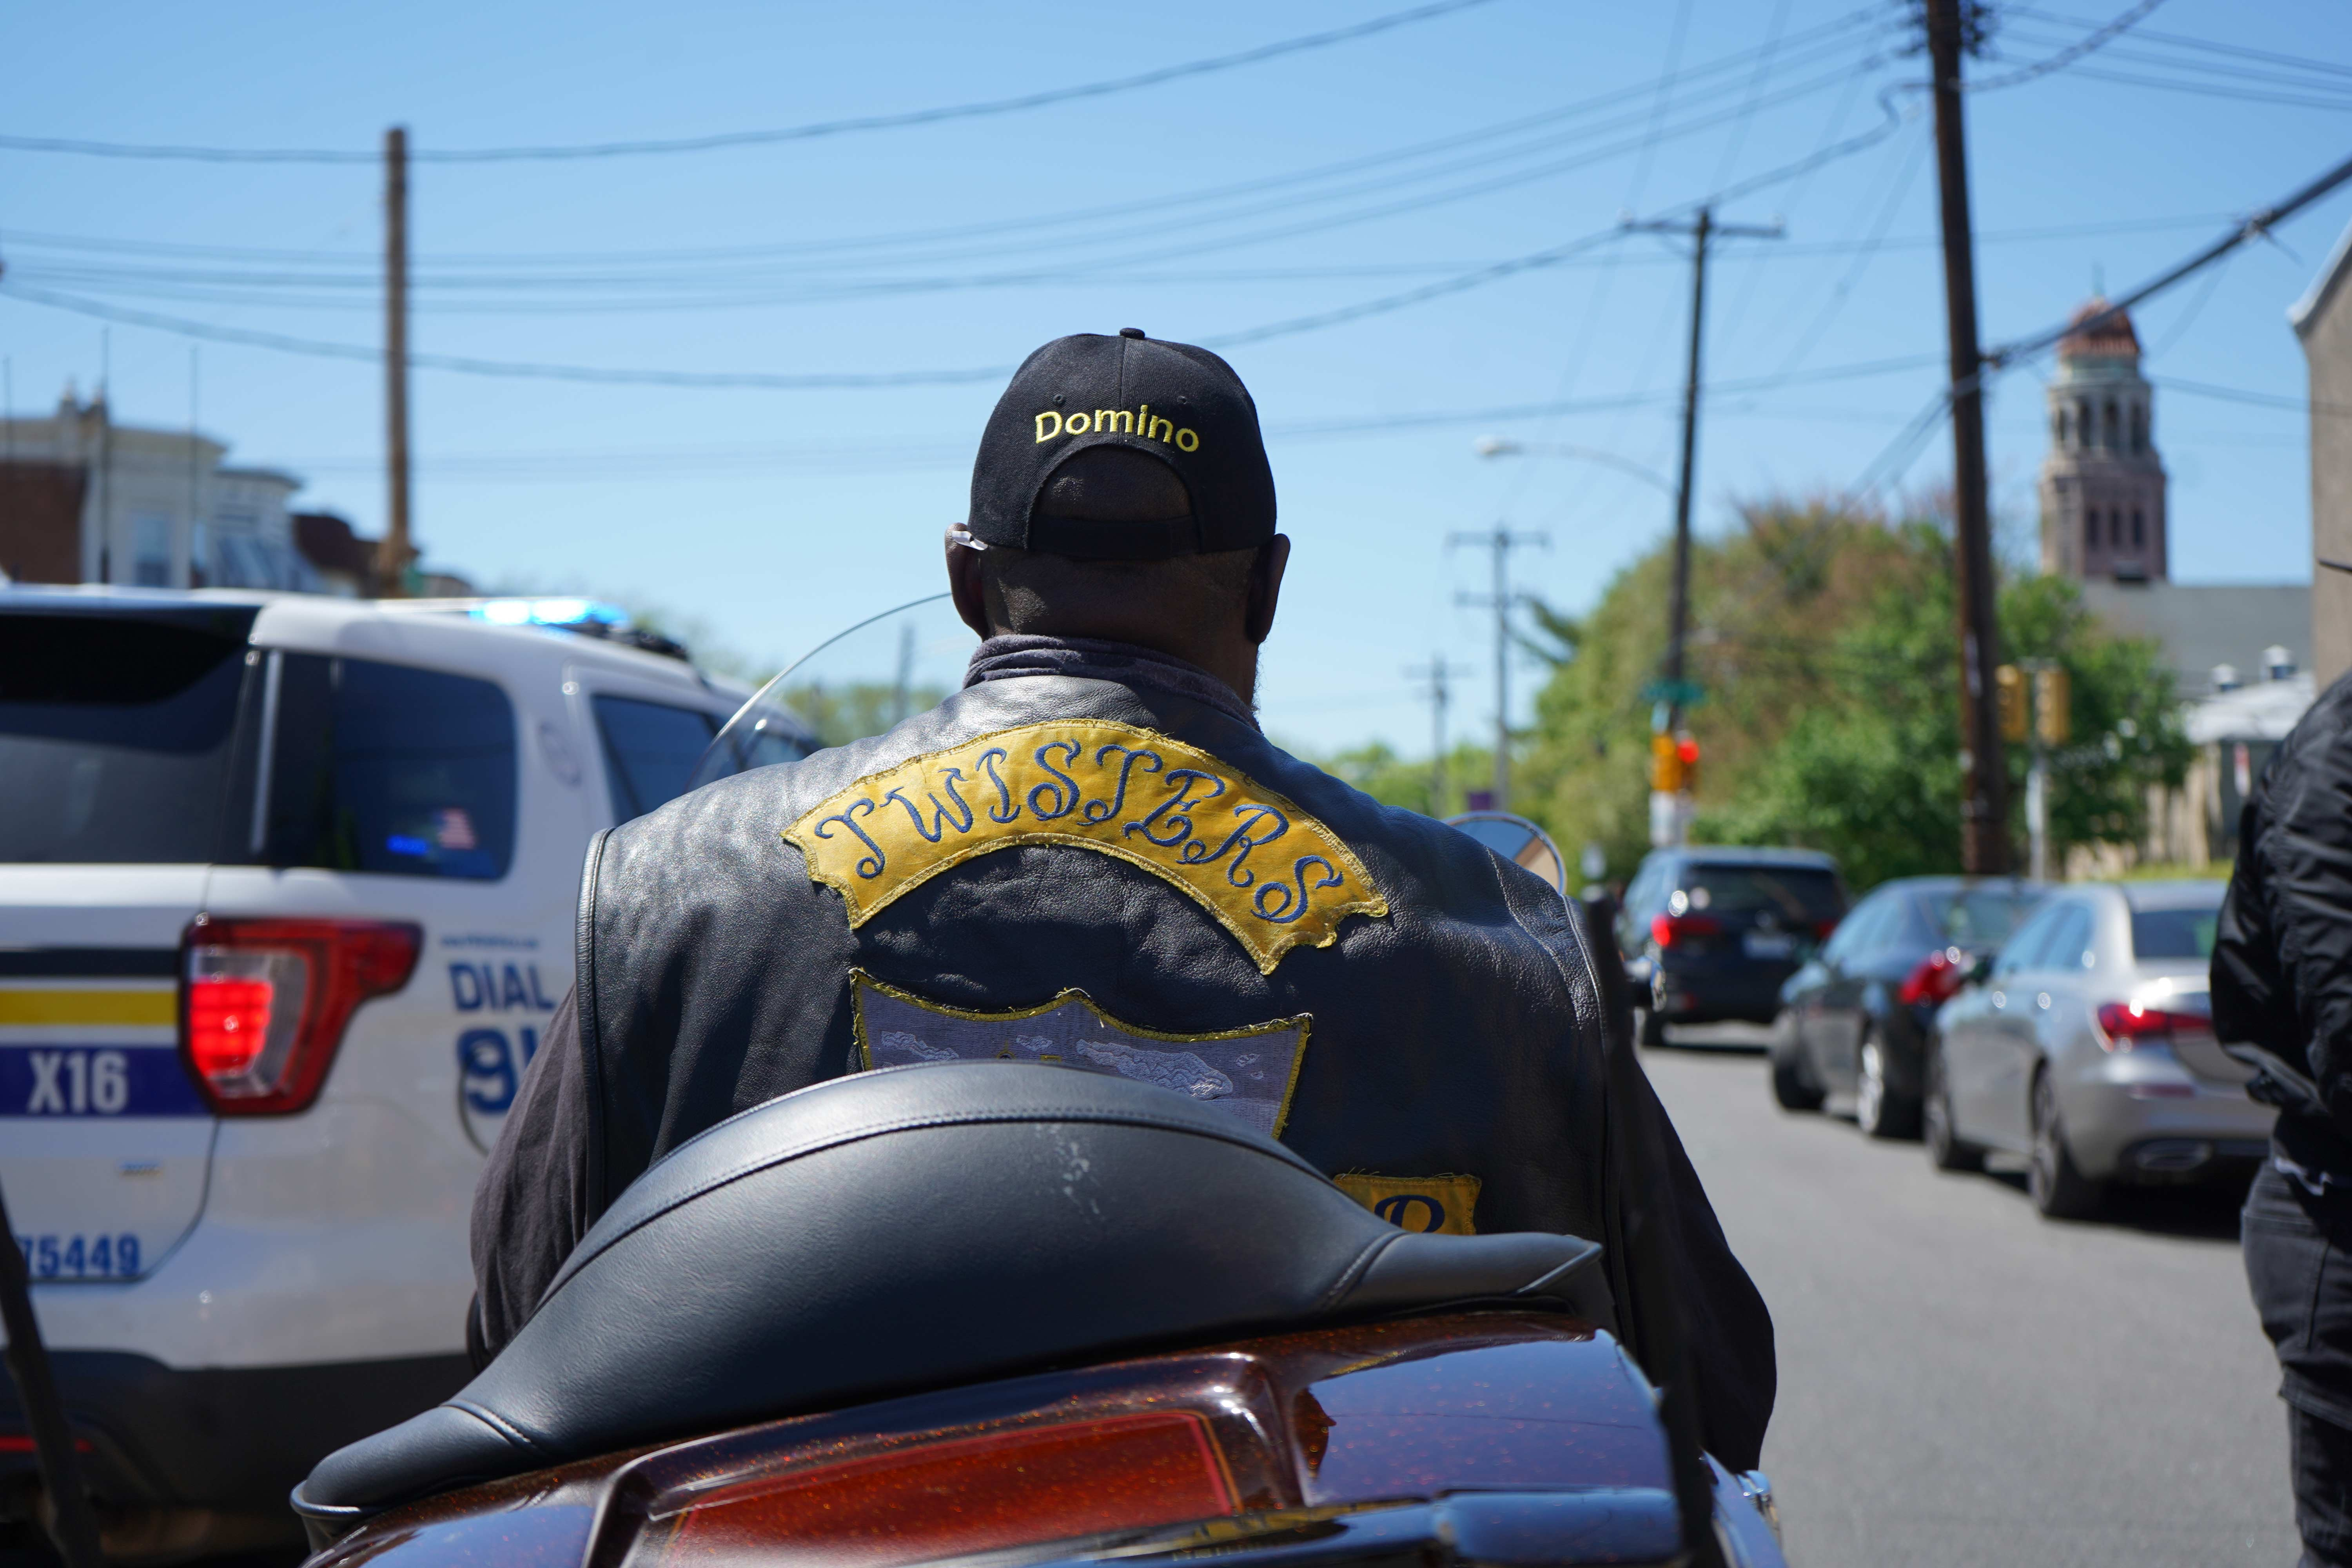 Anthony Stimpson is a member of the Twisters Motorcycle Club. (Kenny Cooper/WHYY)